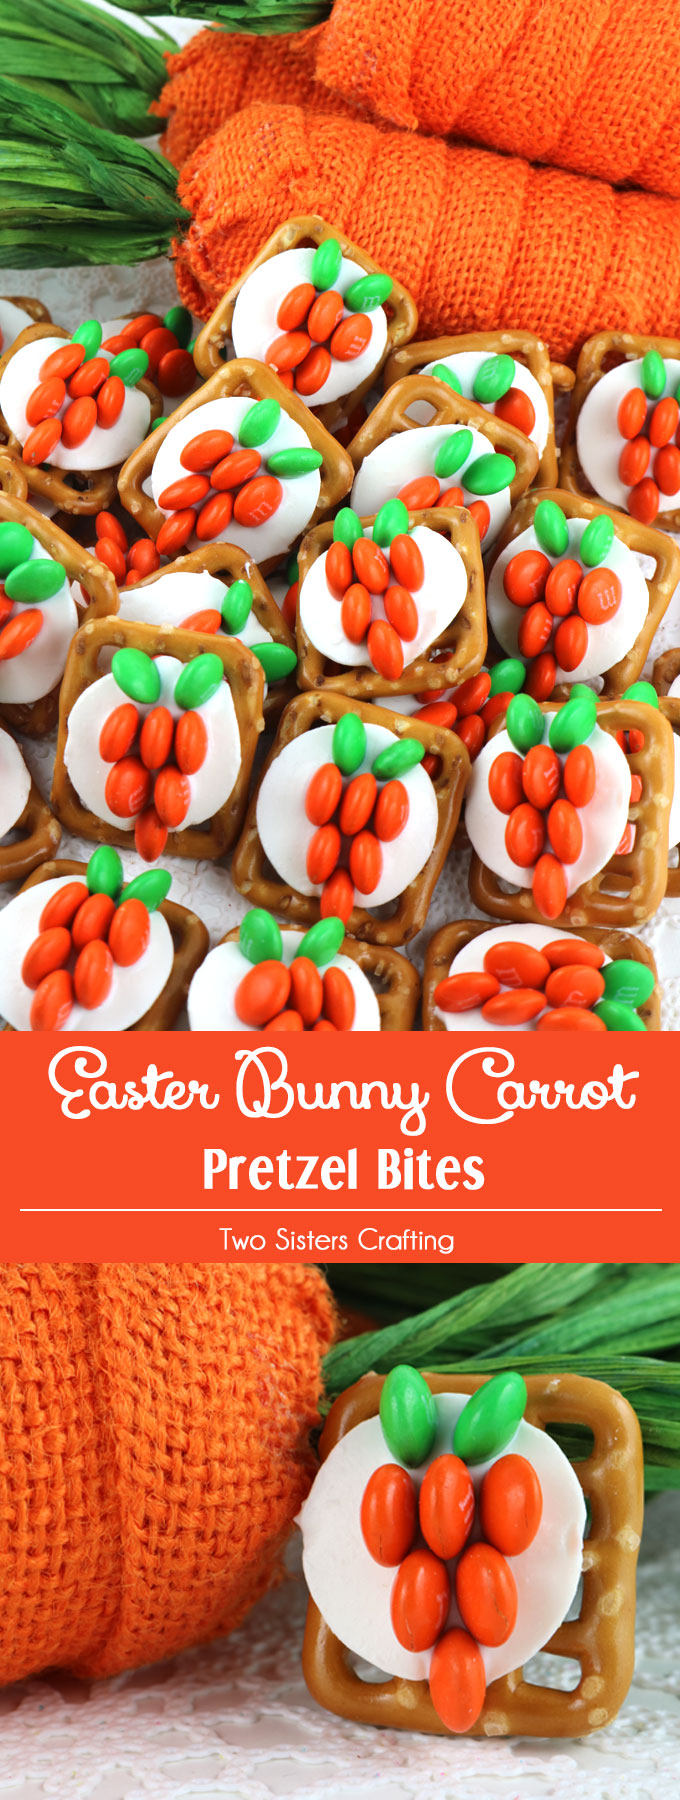 Our easy to make Easter Bunny Carrot Pretzel Bites are yummy bites of sweet and salty Easter Treat goodness. They are perfect as a little extra Easter Dessert or an anytime Spring snack. Follow us for more fun Easter Food Ideas.